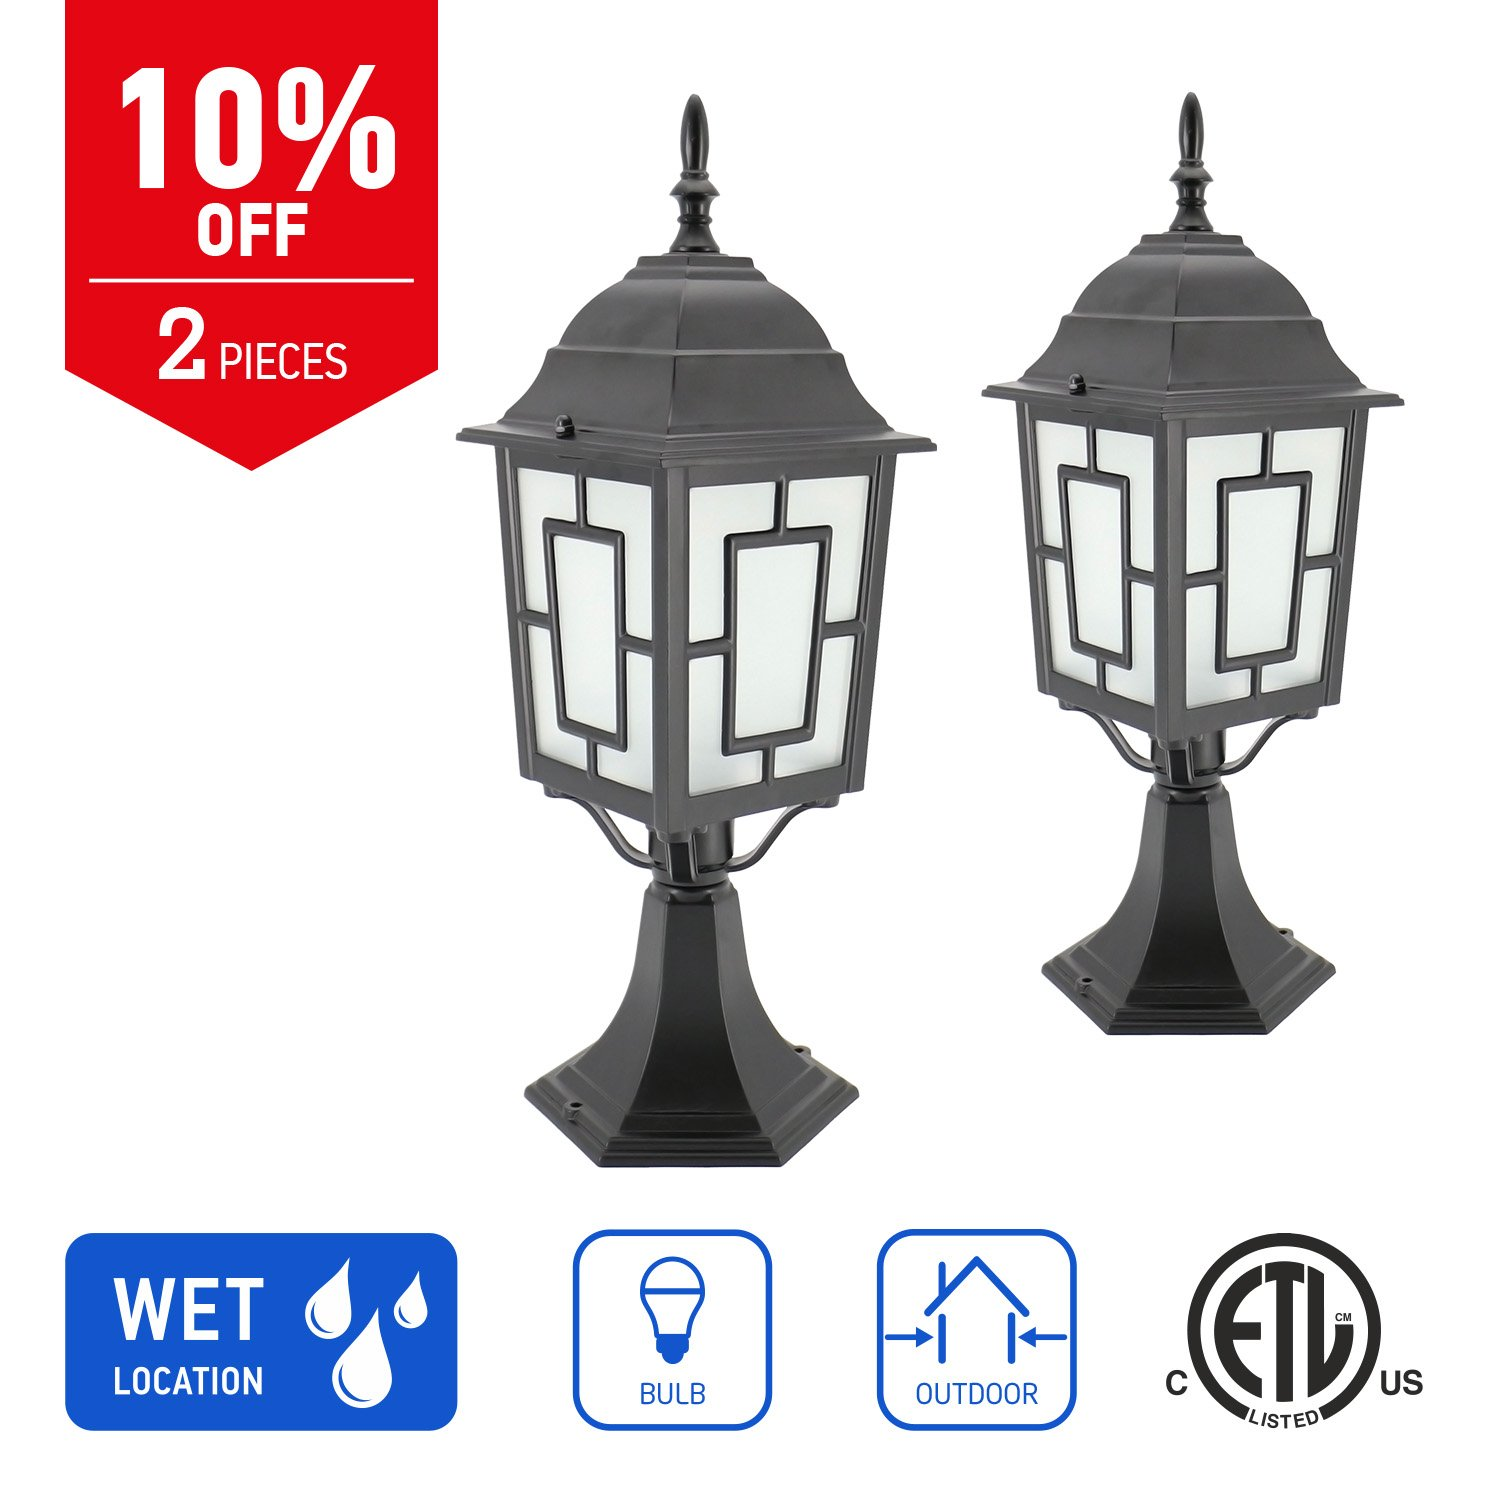 IN HOME 1-Light Outdoor Garden Post Lantern L05 Lighting Fixture, Traditional Post Lamp Patio with One E26 Base, Water-Proof, Black Cast Aluminum Housing, Frosted Glass Panels, (2 Pack) ETL Listed